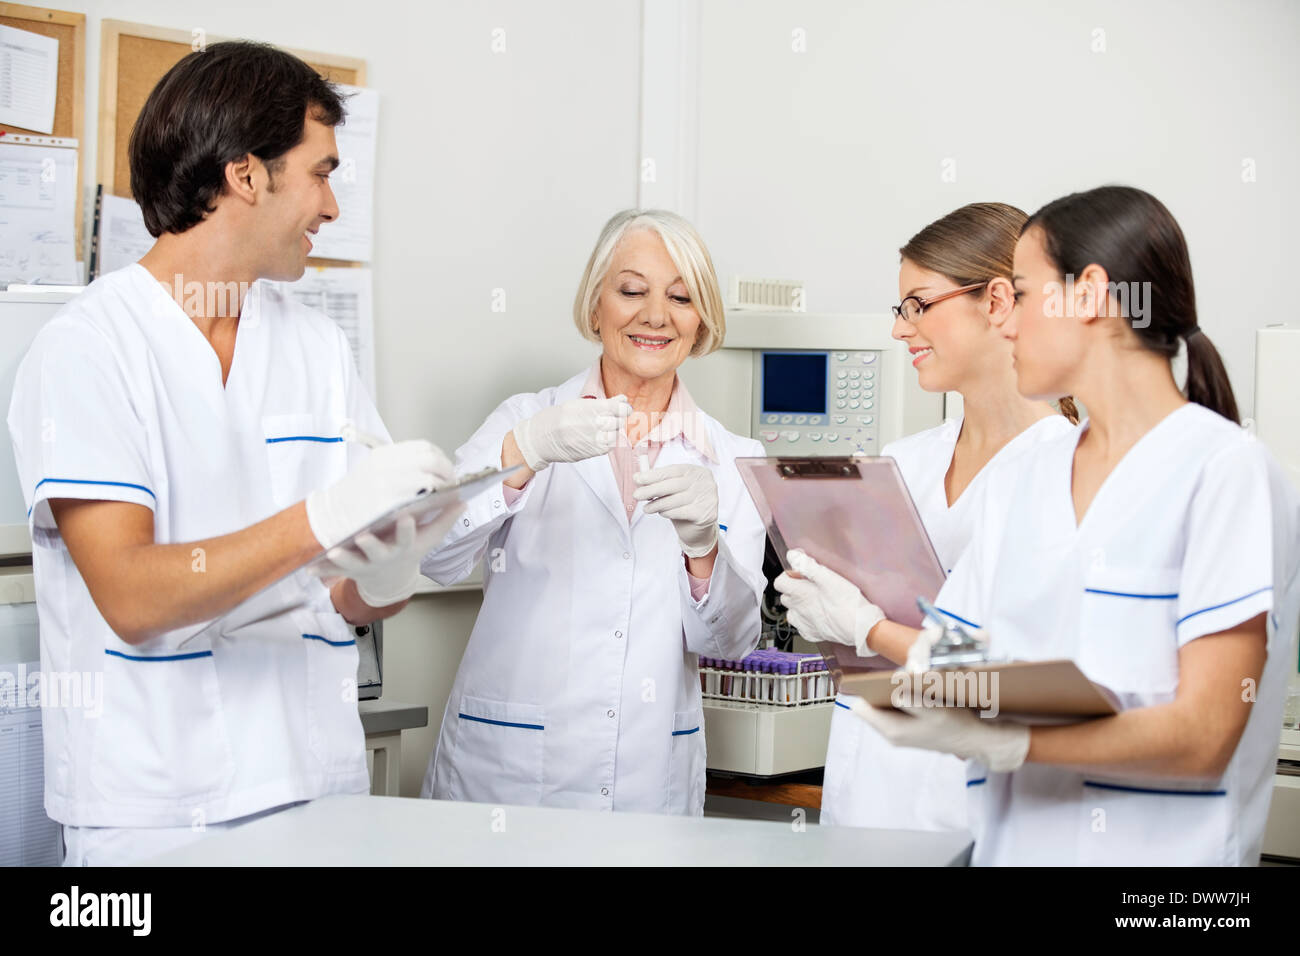 Scientists Discussing Over Sample In Laboratory Stock Photo